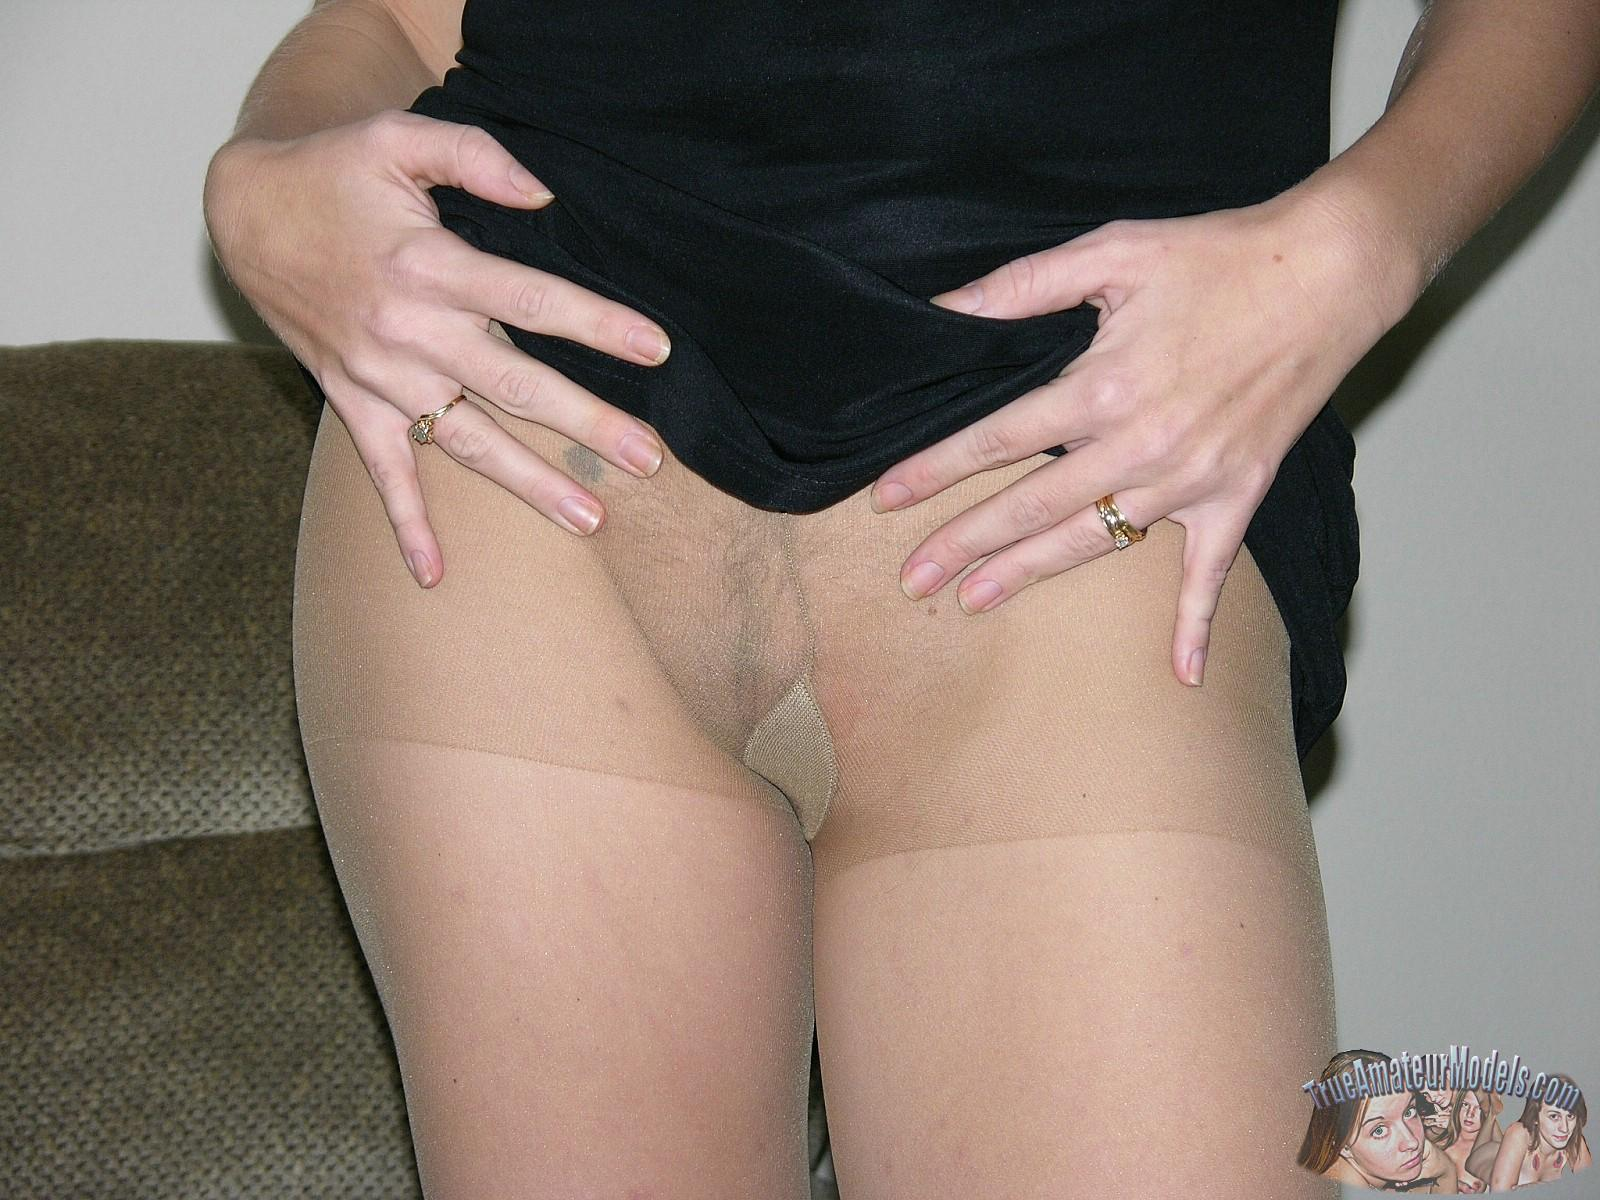 Adult Video Pointed boobs soft nylons